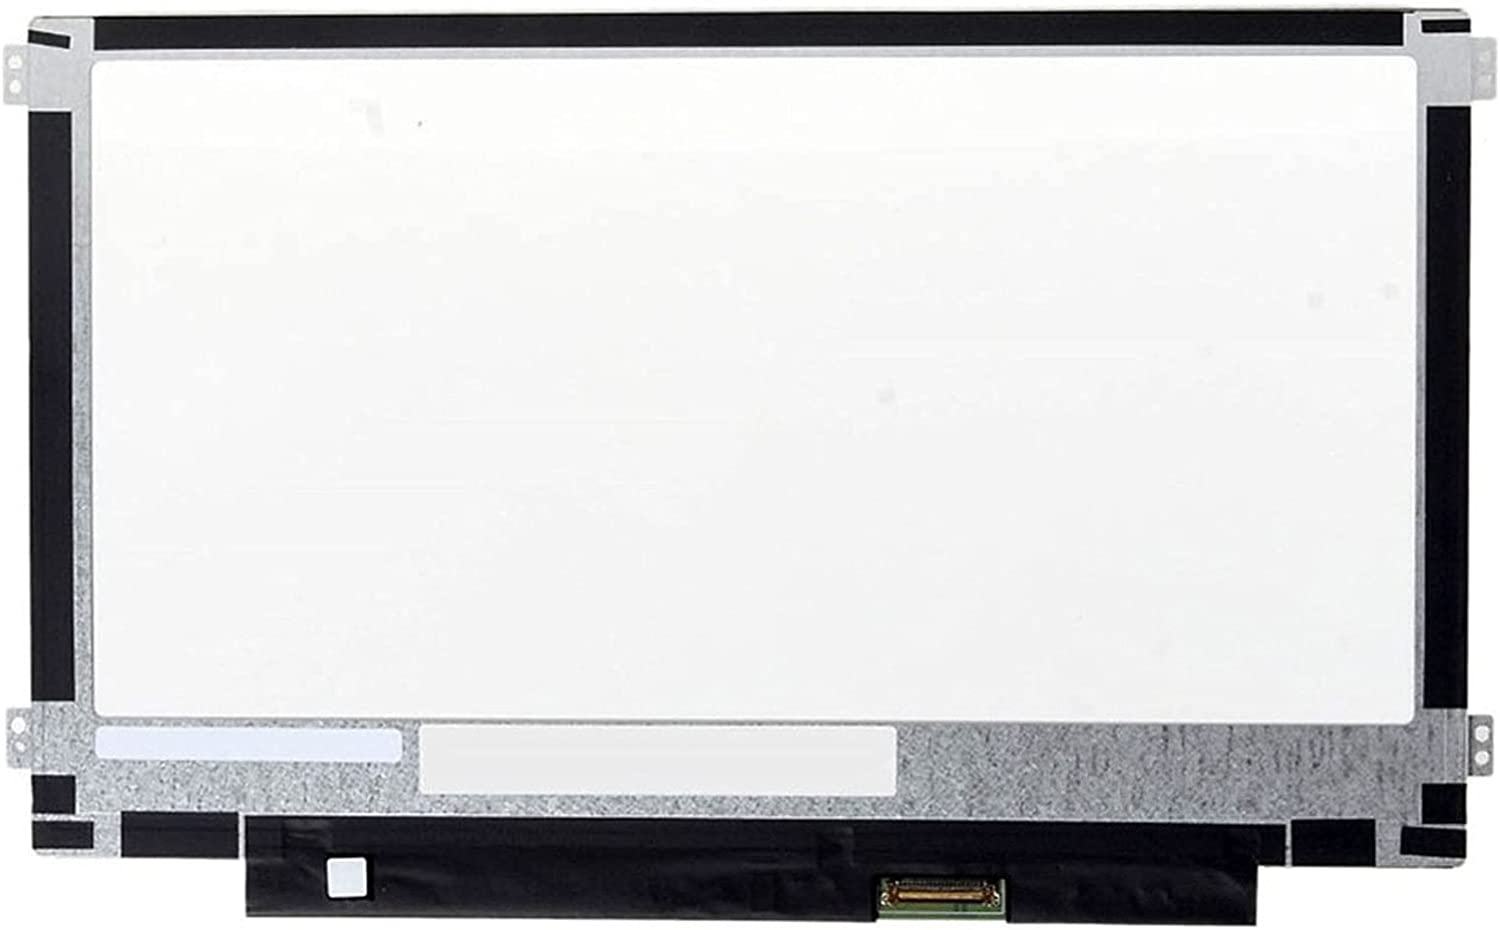 Tested New Screen Replacement for Acer Chromebook C771 HD 1366x768 IPS Matte LCD LED Display Panel